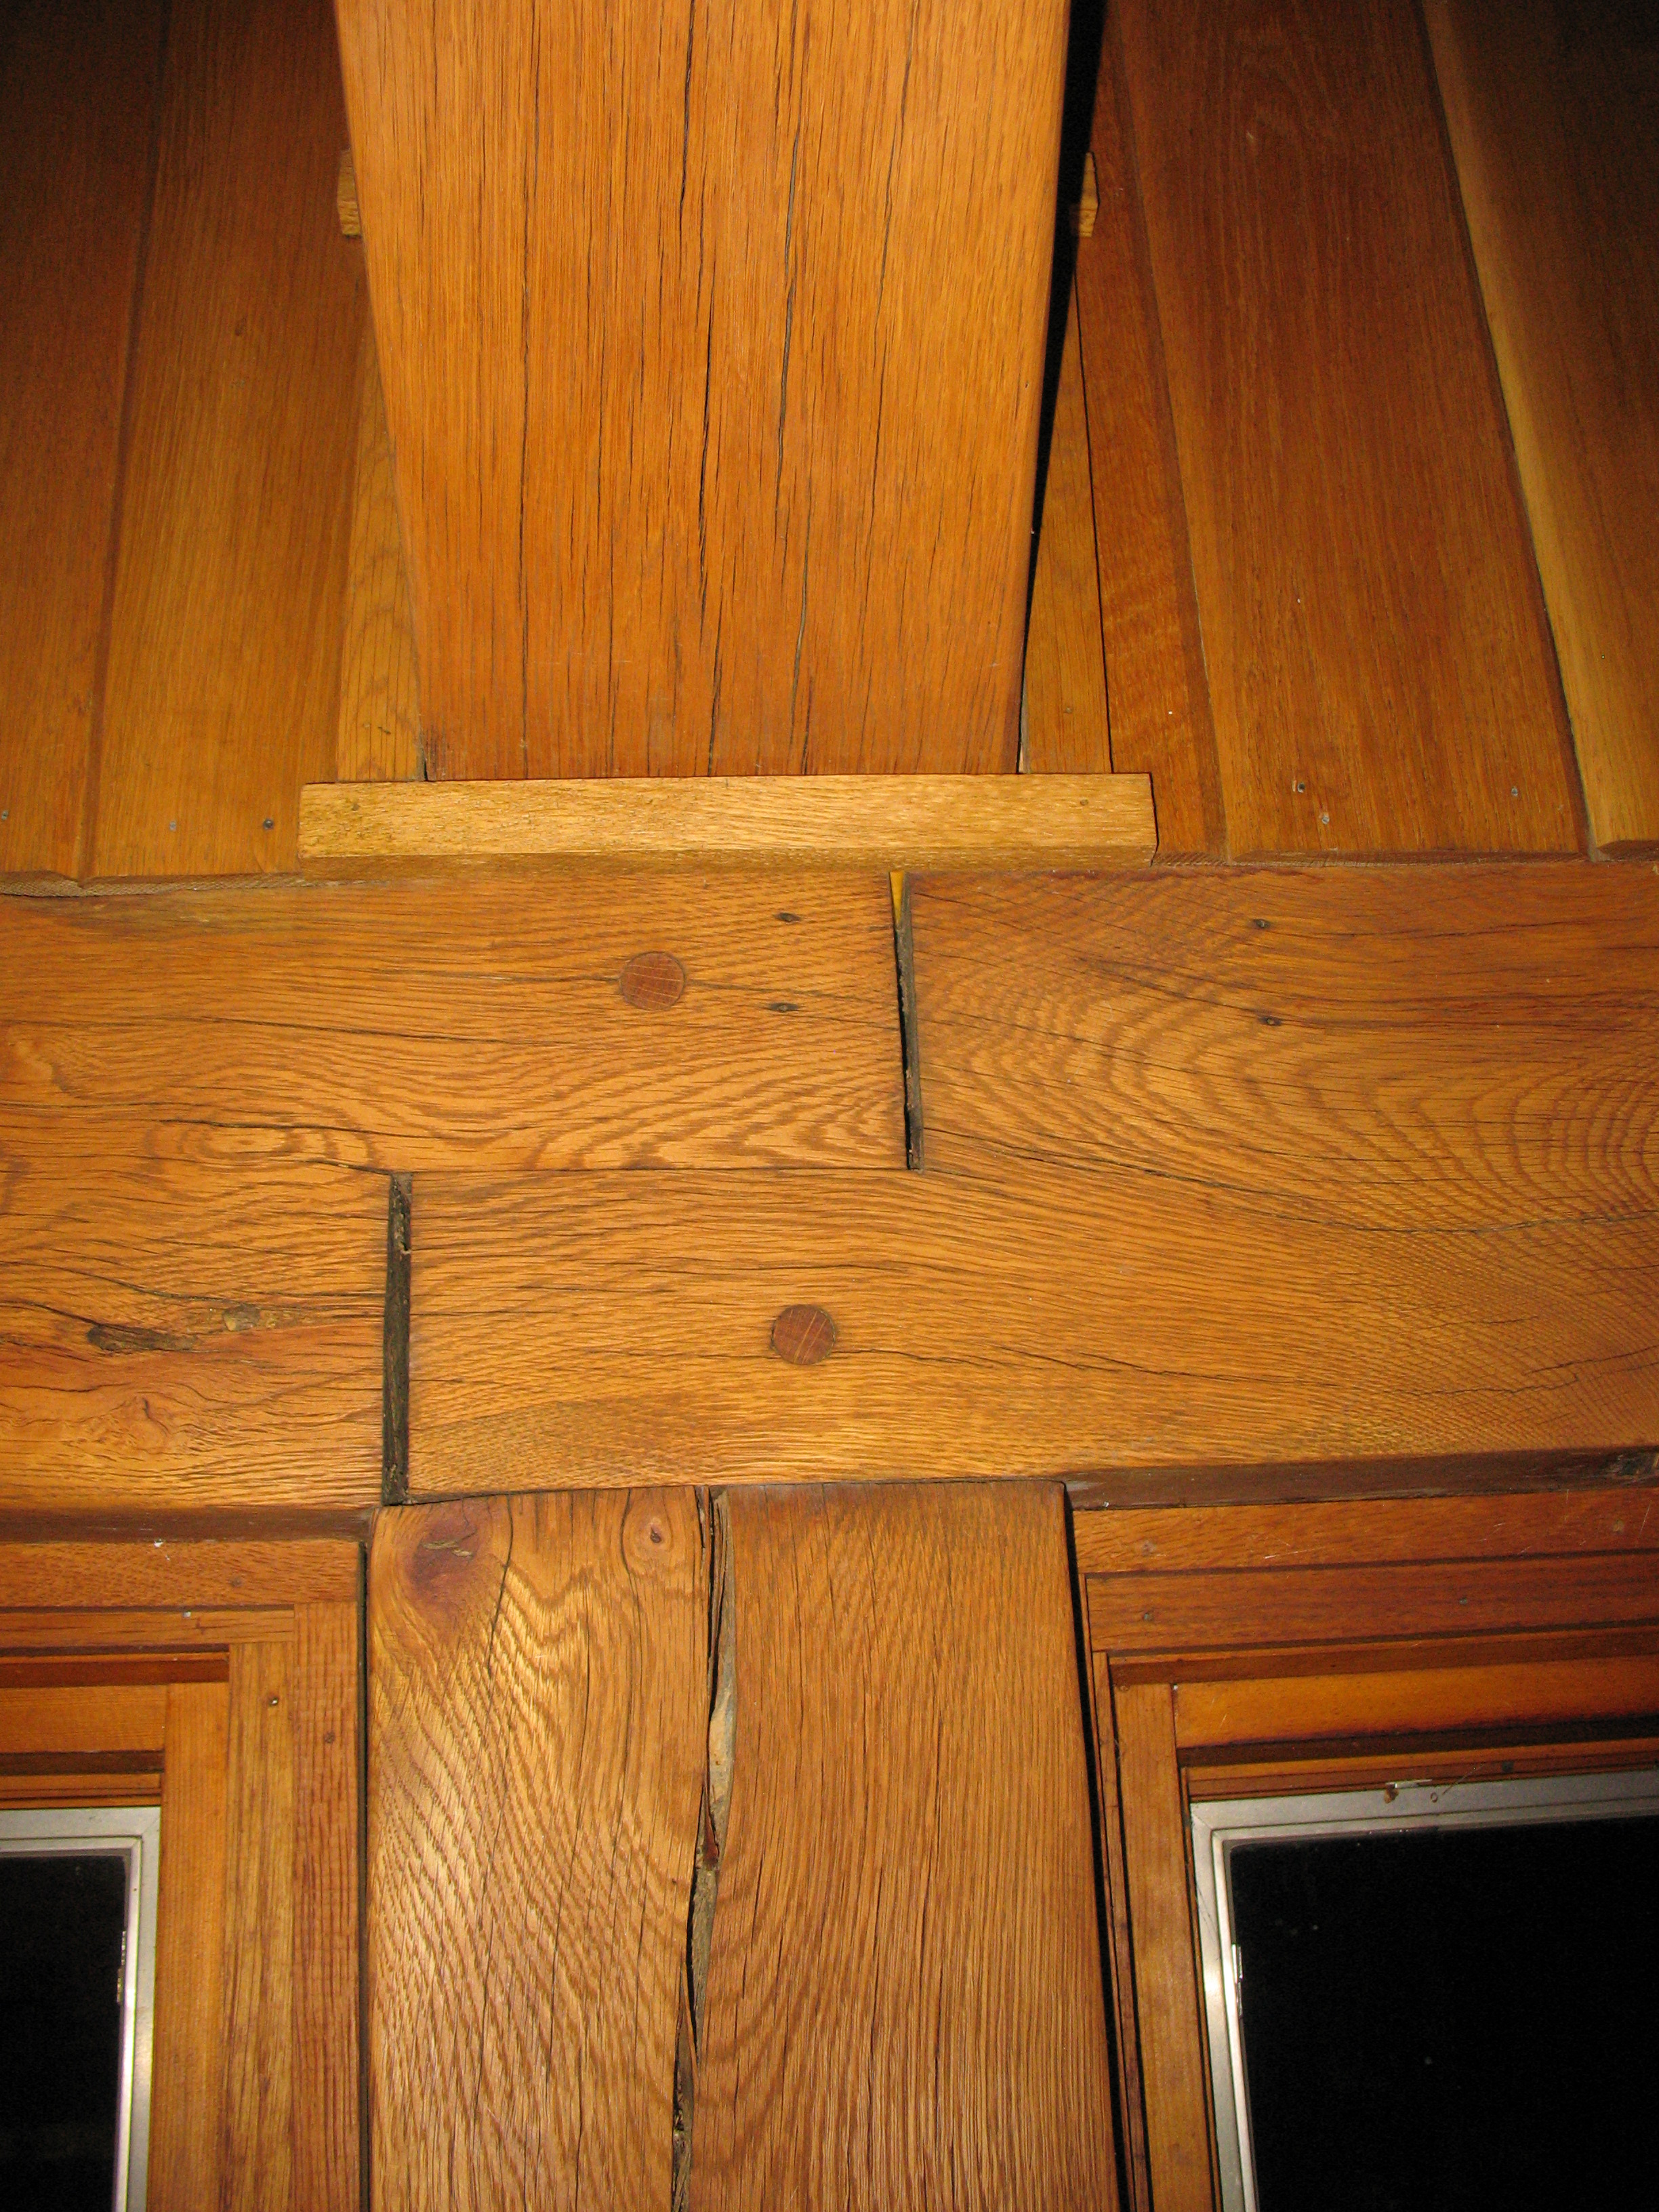 Timber frame Joinery in my house. | jim wallace